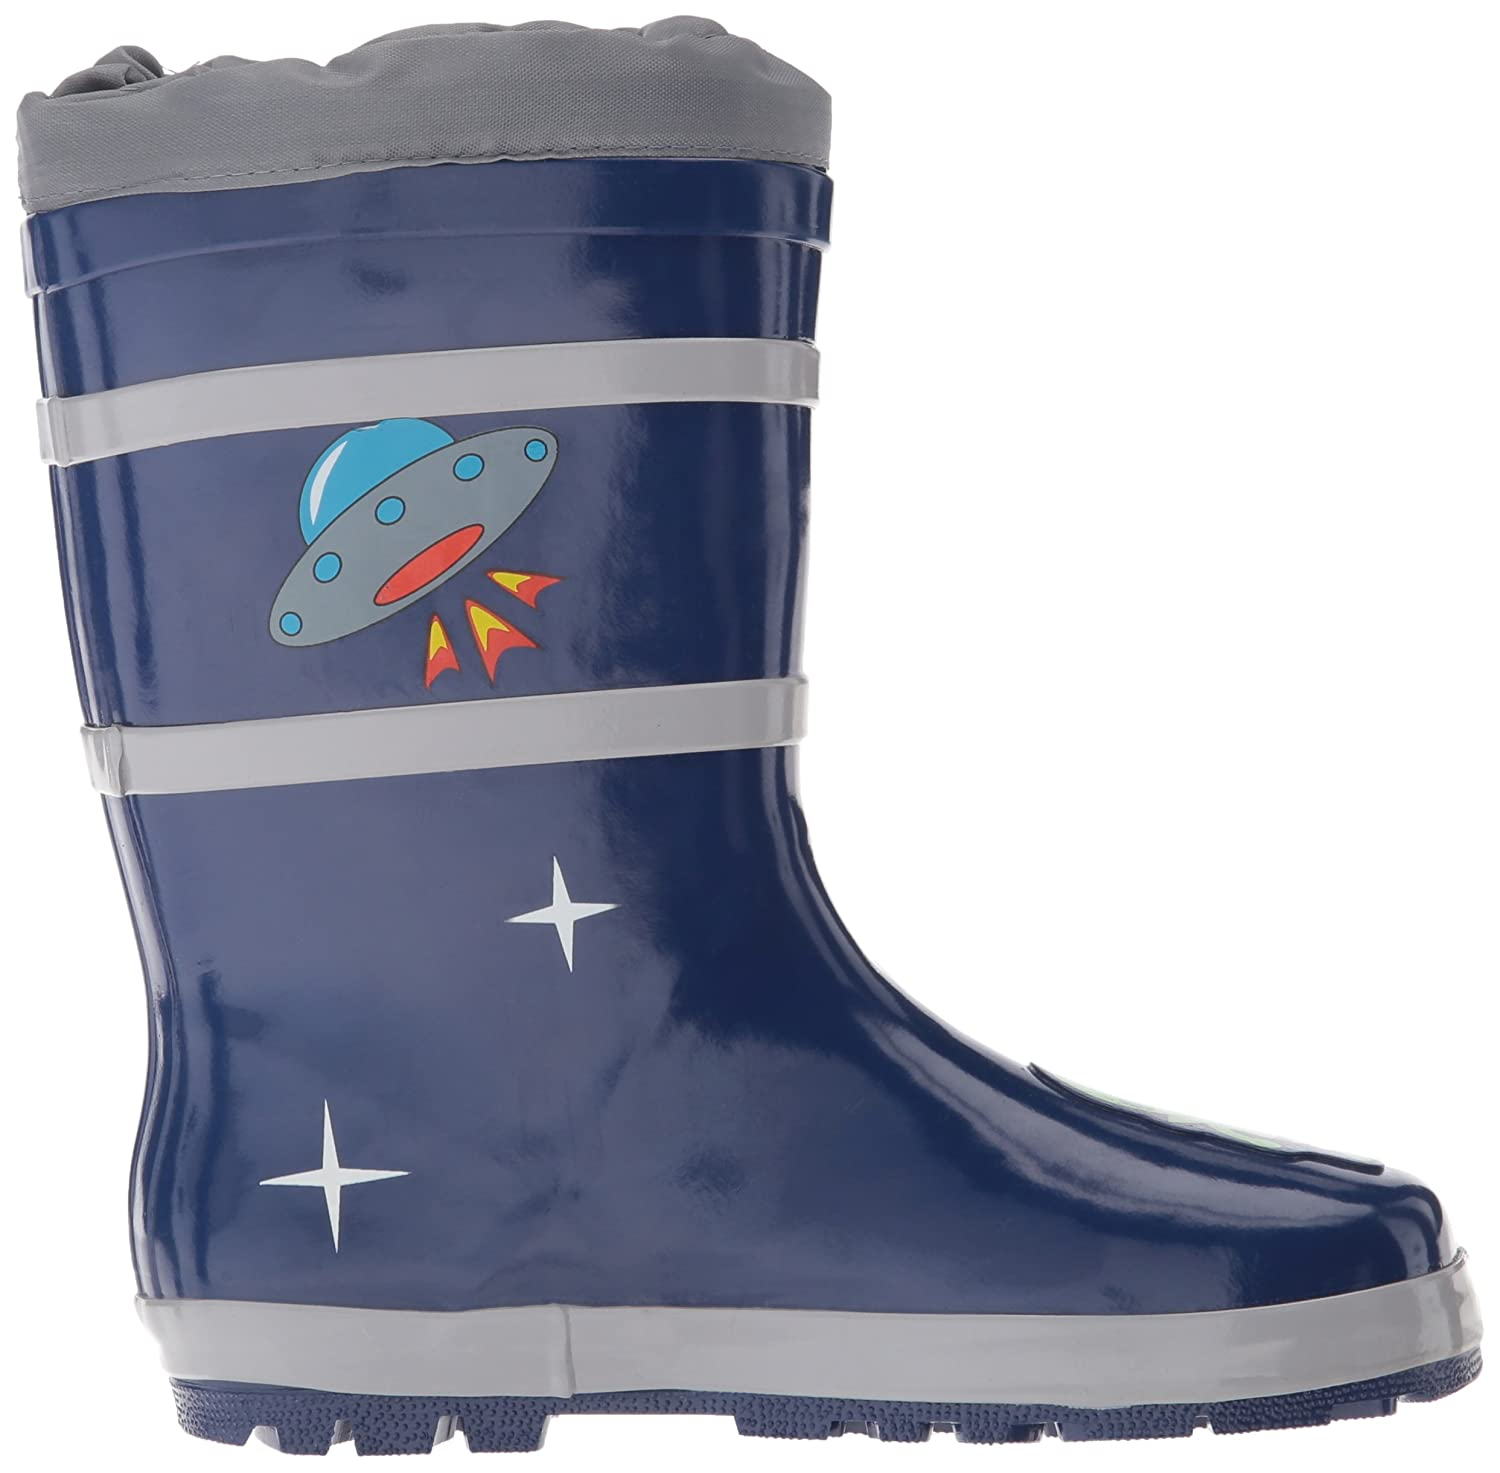 Amazon.com: Kidorable Blue Space Hero Natural Rubber Rain Boots: Clothing